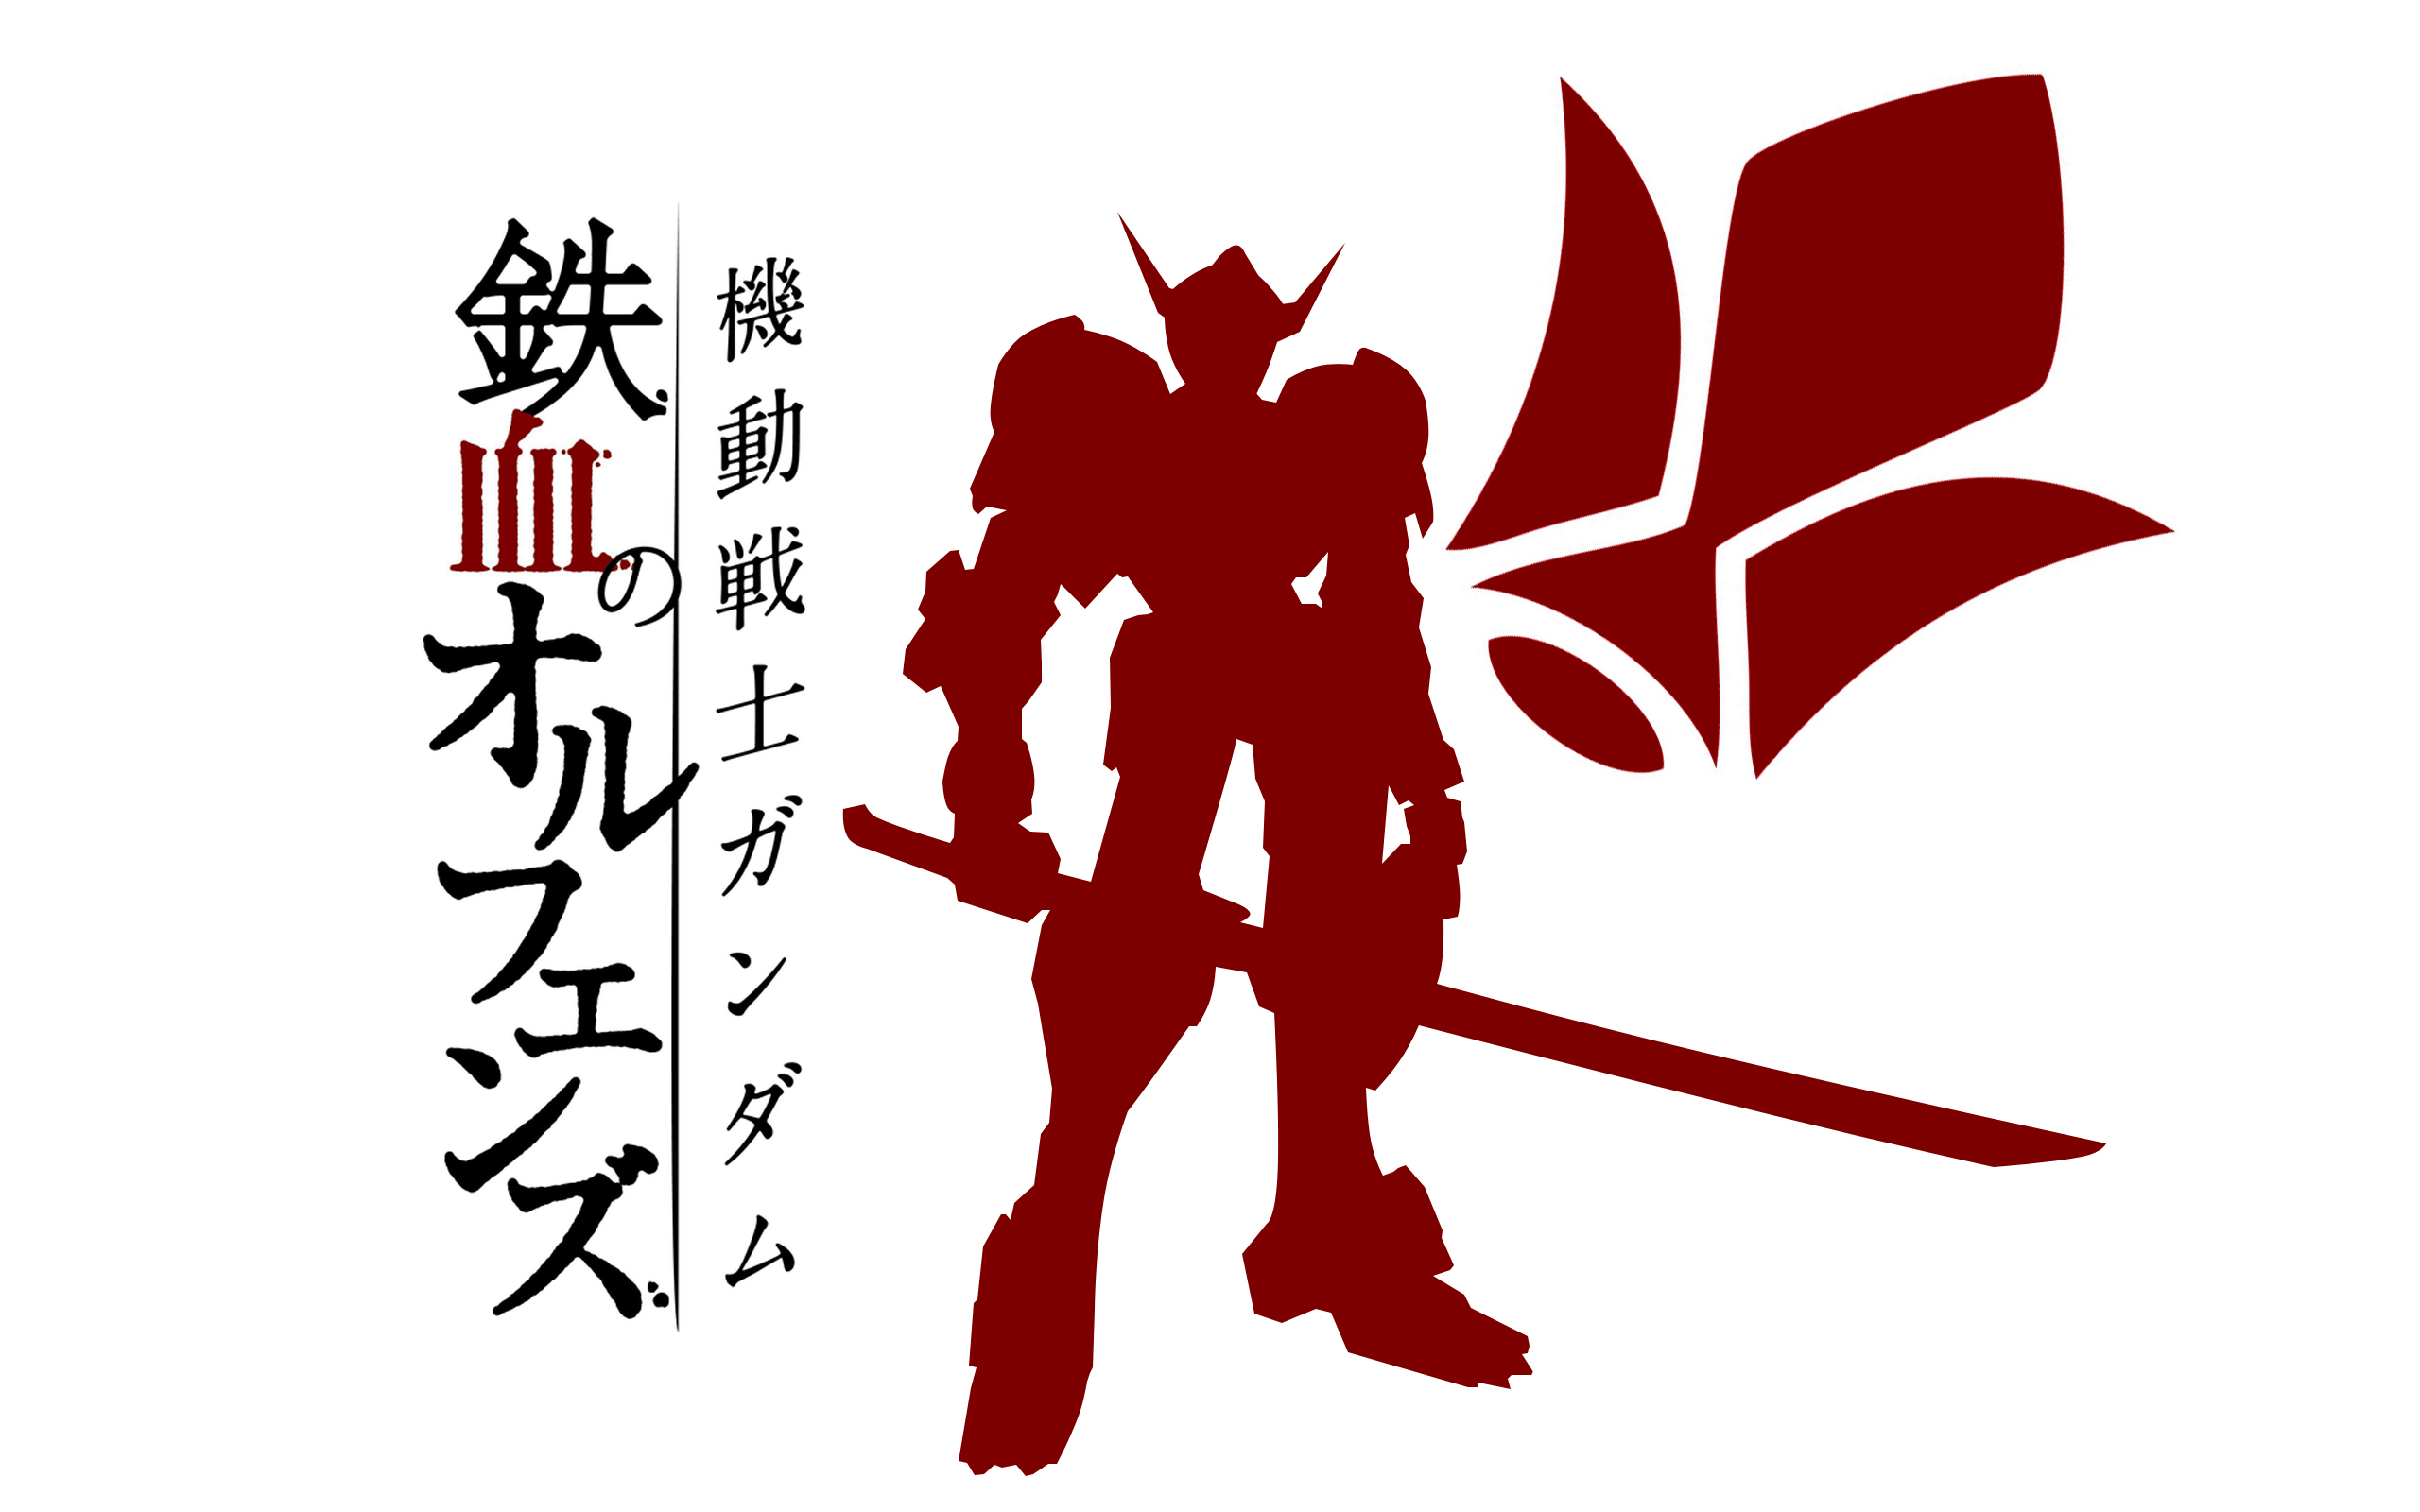 Iron blooded orphans wallpaper pack by imn0g00d on deviantart iron blooded orphans wallpaper pack by imn0g00d voltagebd Images